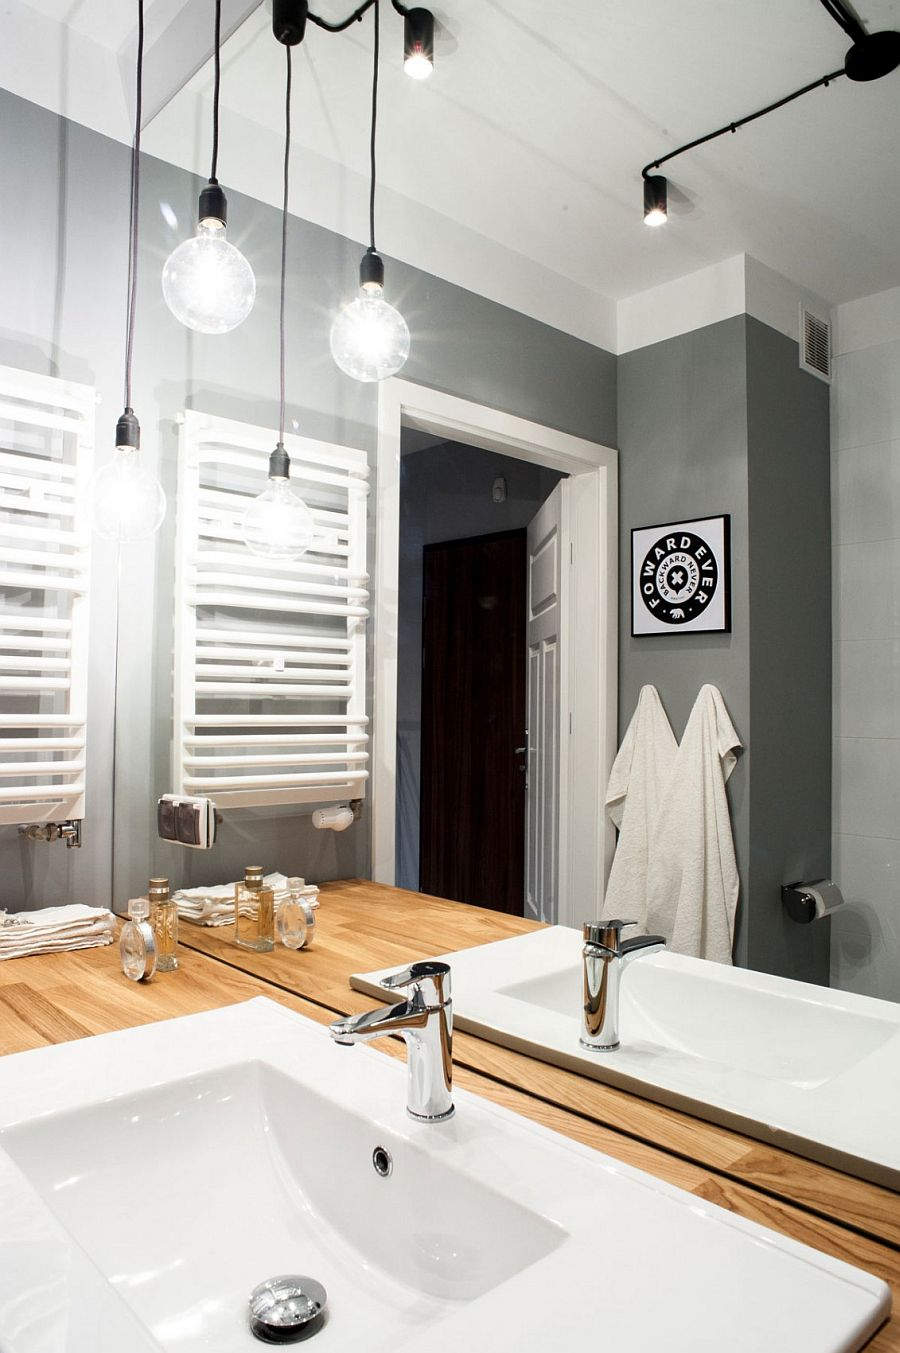 Gray and white create a fabulous bathroom full of personality